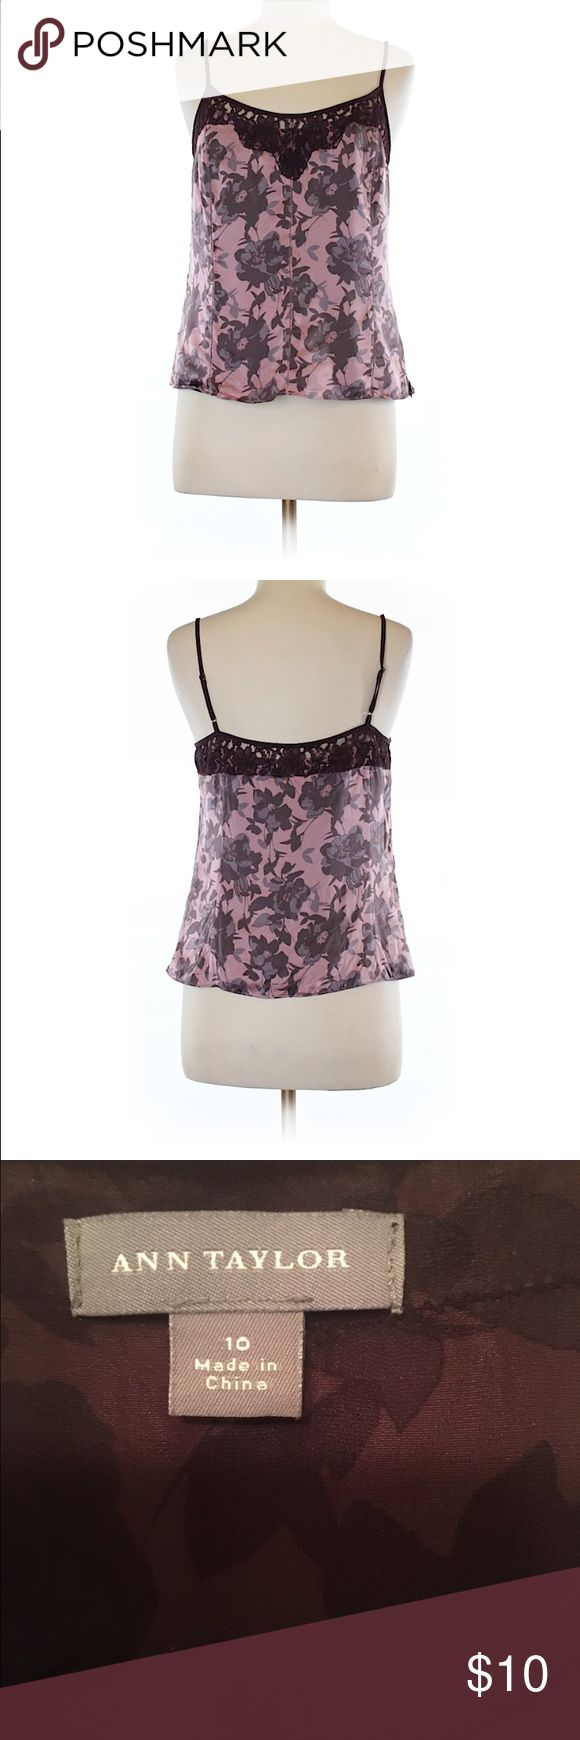 Ann Taylor silk top size 10 This is excellent condition purple hues silk top. Has a hidden side zipper for easy on and off. Length is 14 inches long. Ann Taylor Tops Camisoles